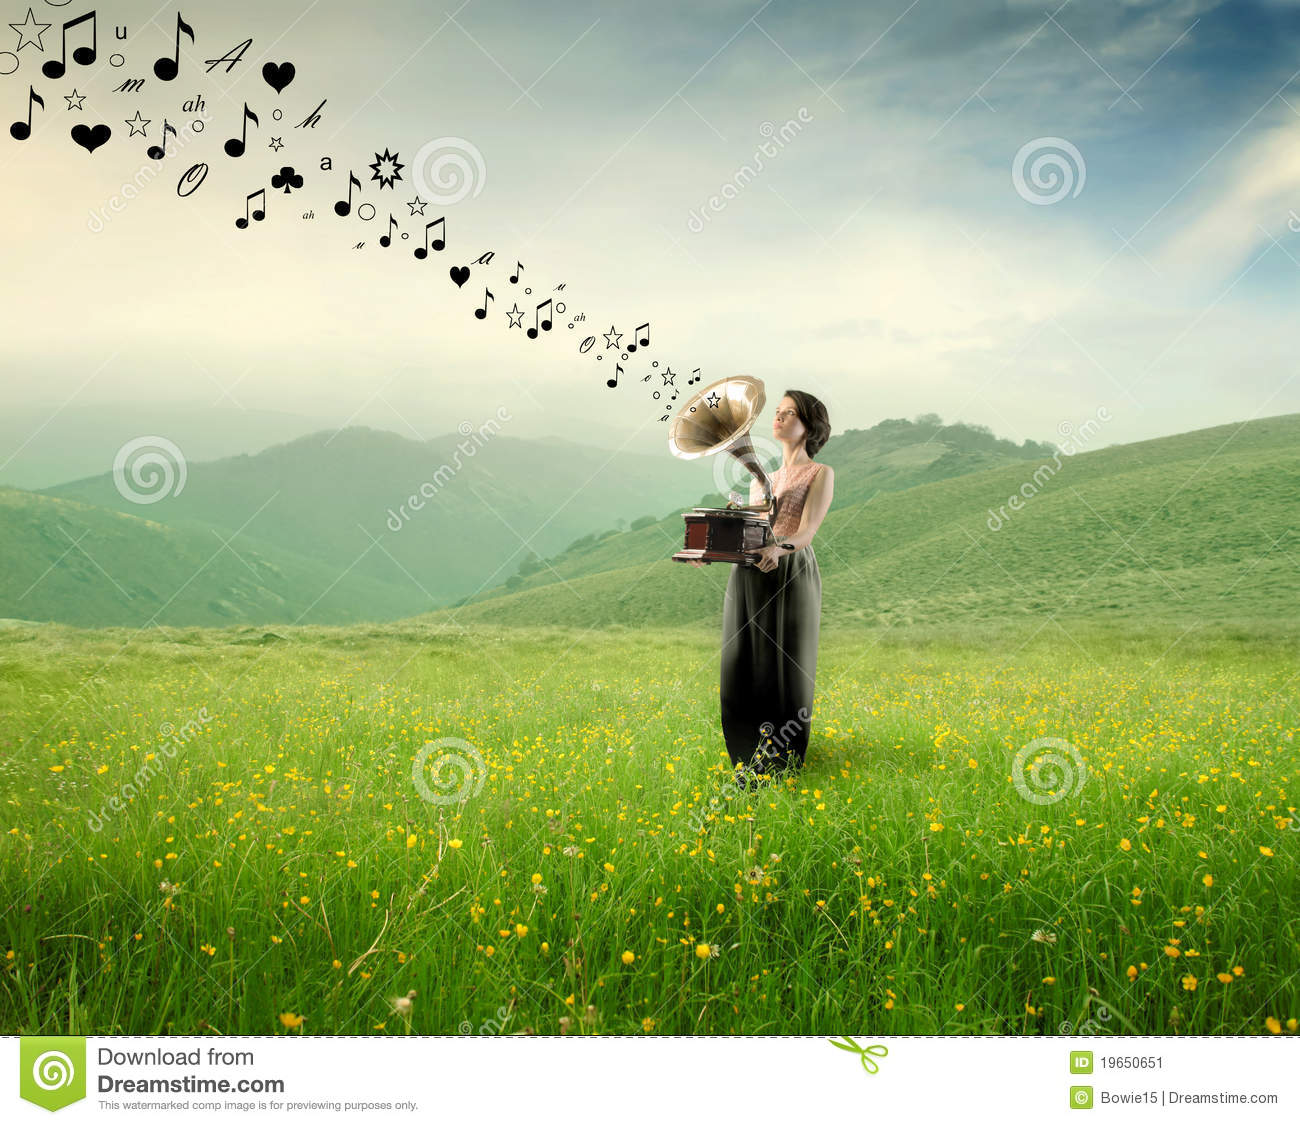 Beautiful garden wallpaper - Music In The Nature Stock Image Image 19650651